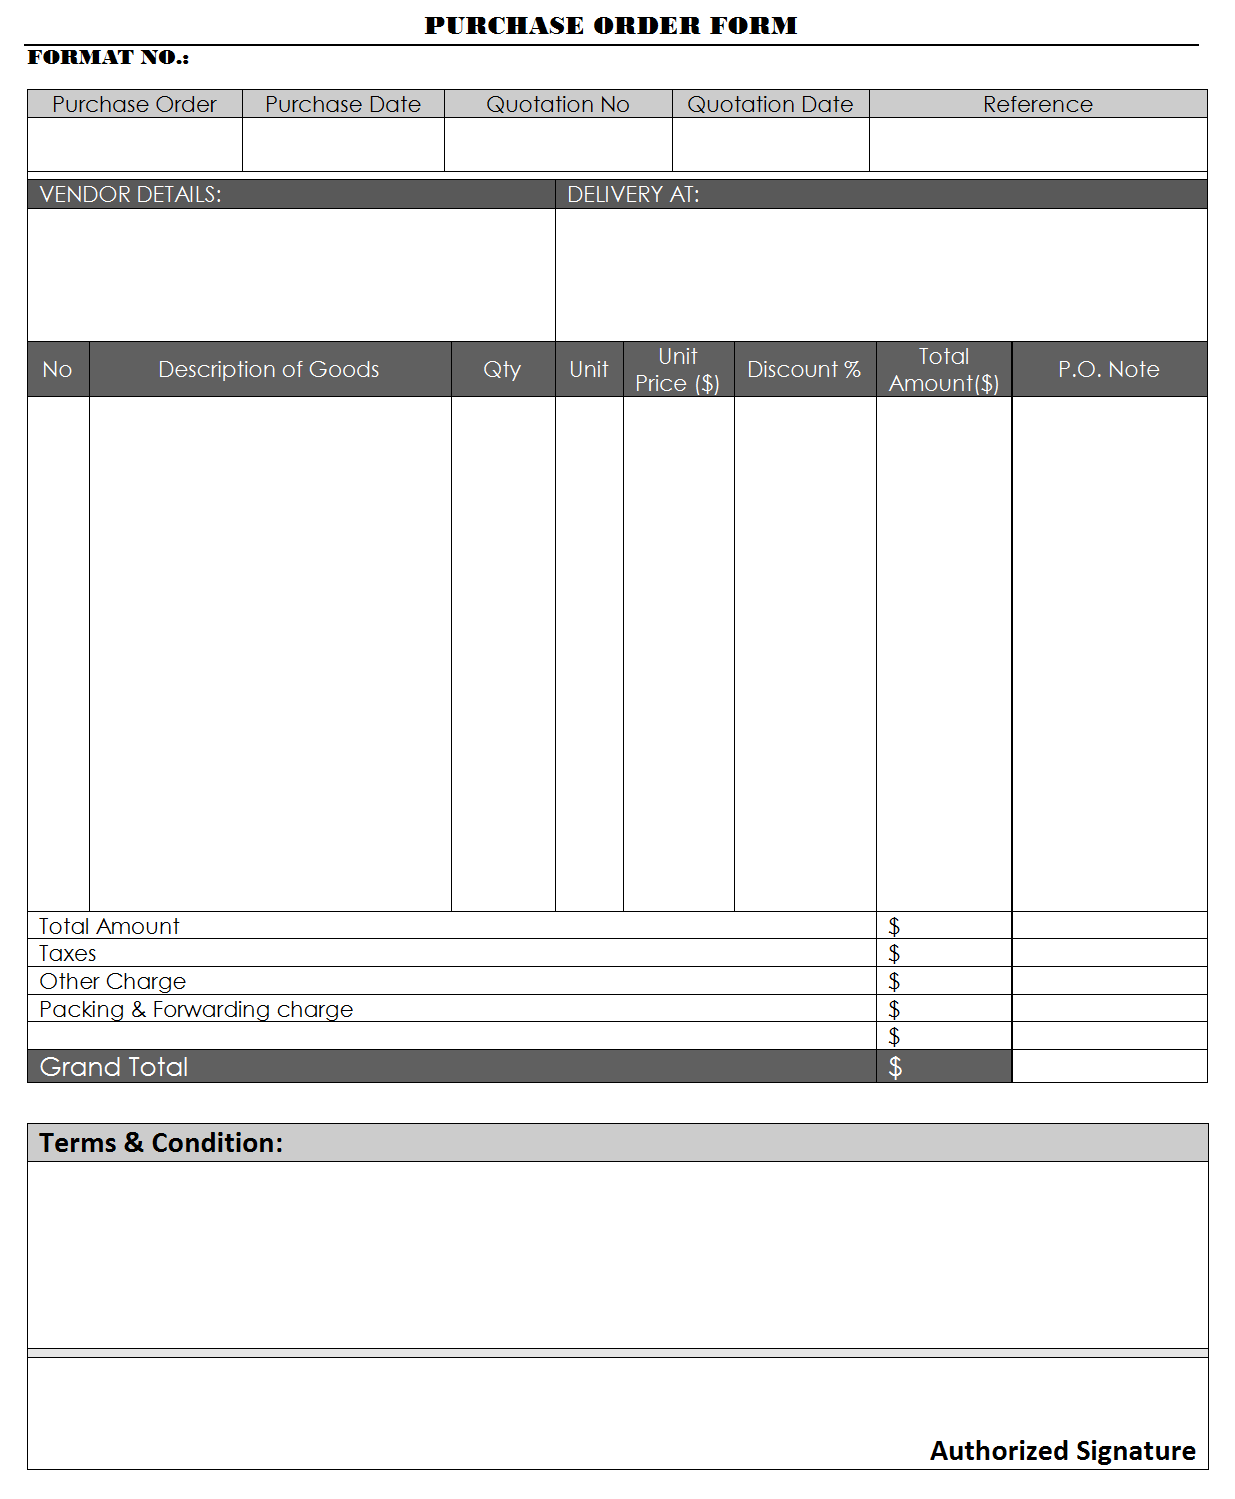 Good Purchase Order Form Format Format PG 1 ...  Purchase Order Format Download